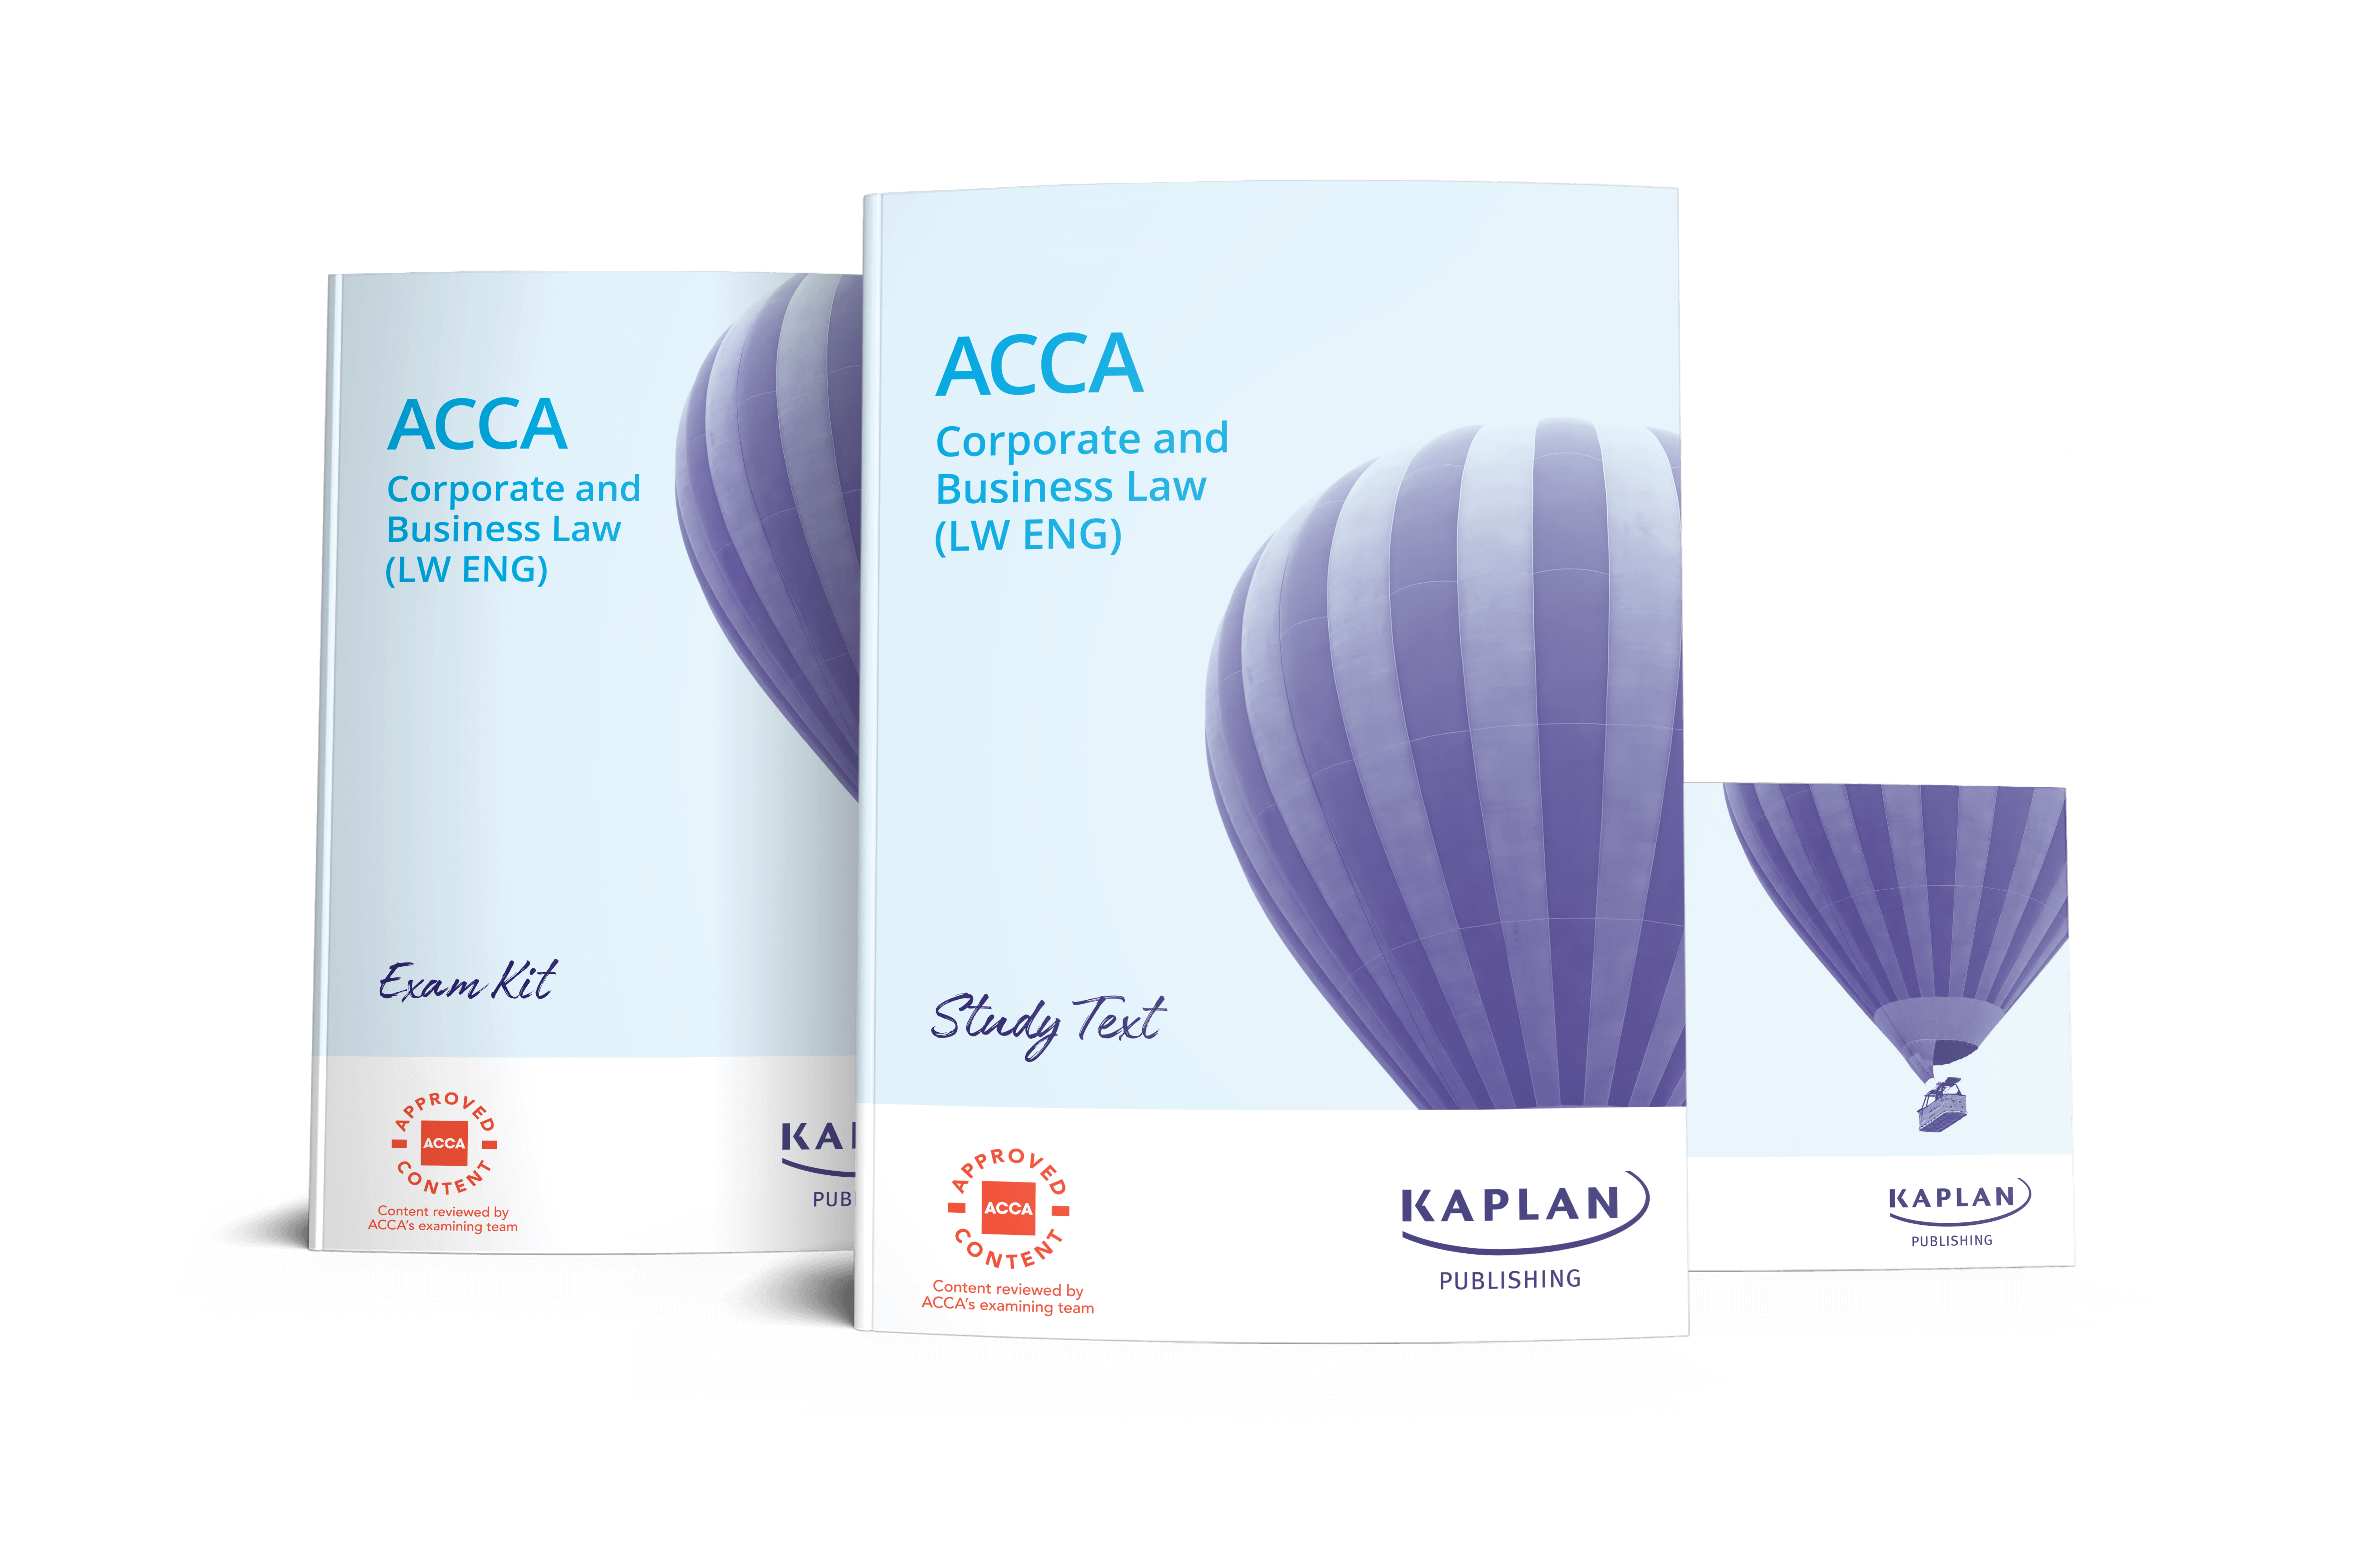 ACCA Corporate and Business Law England | Kaplan Publishing